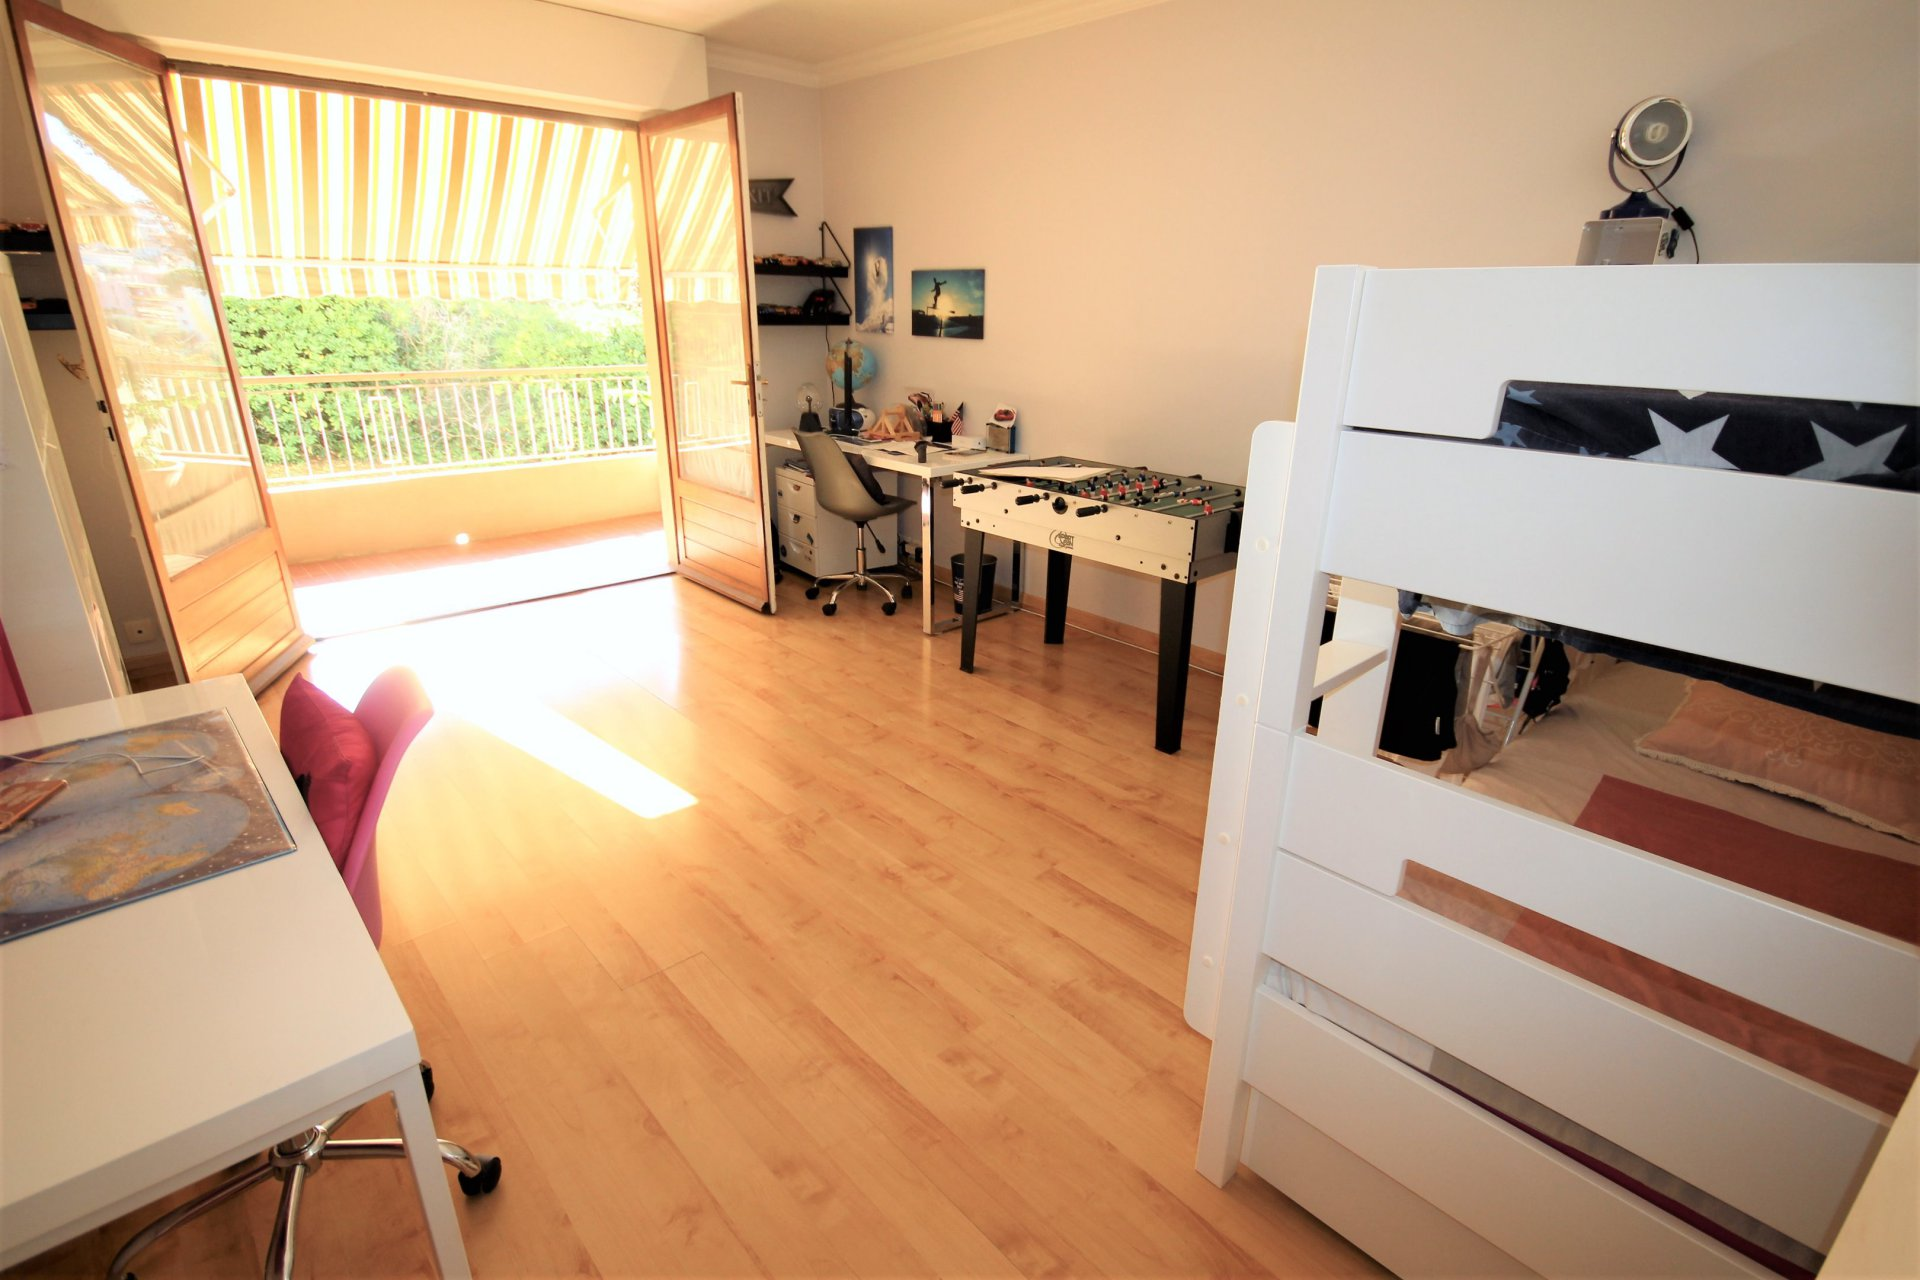 LE CANNET MAIRIE Sale 3 rooms in DUPLEX in quiet near shops